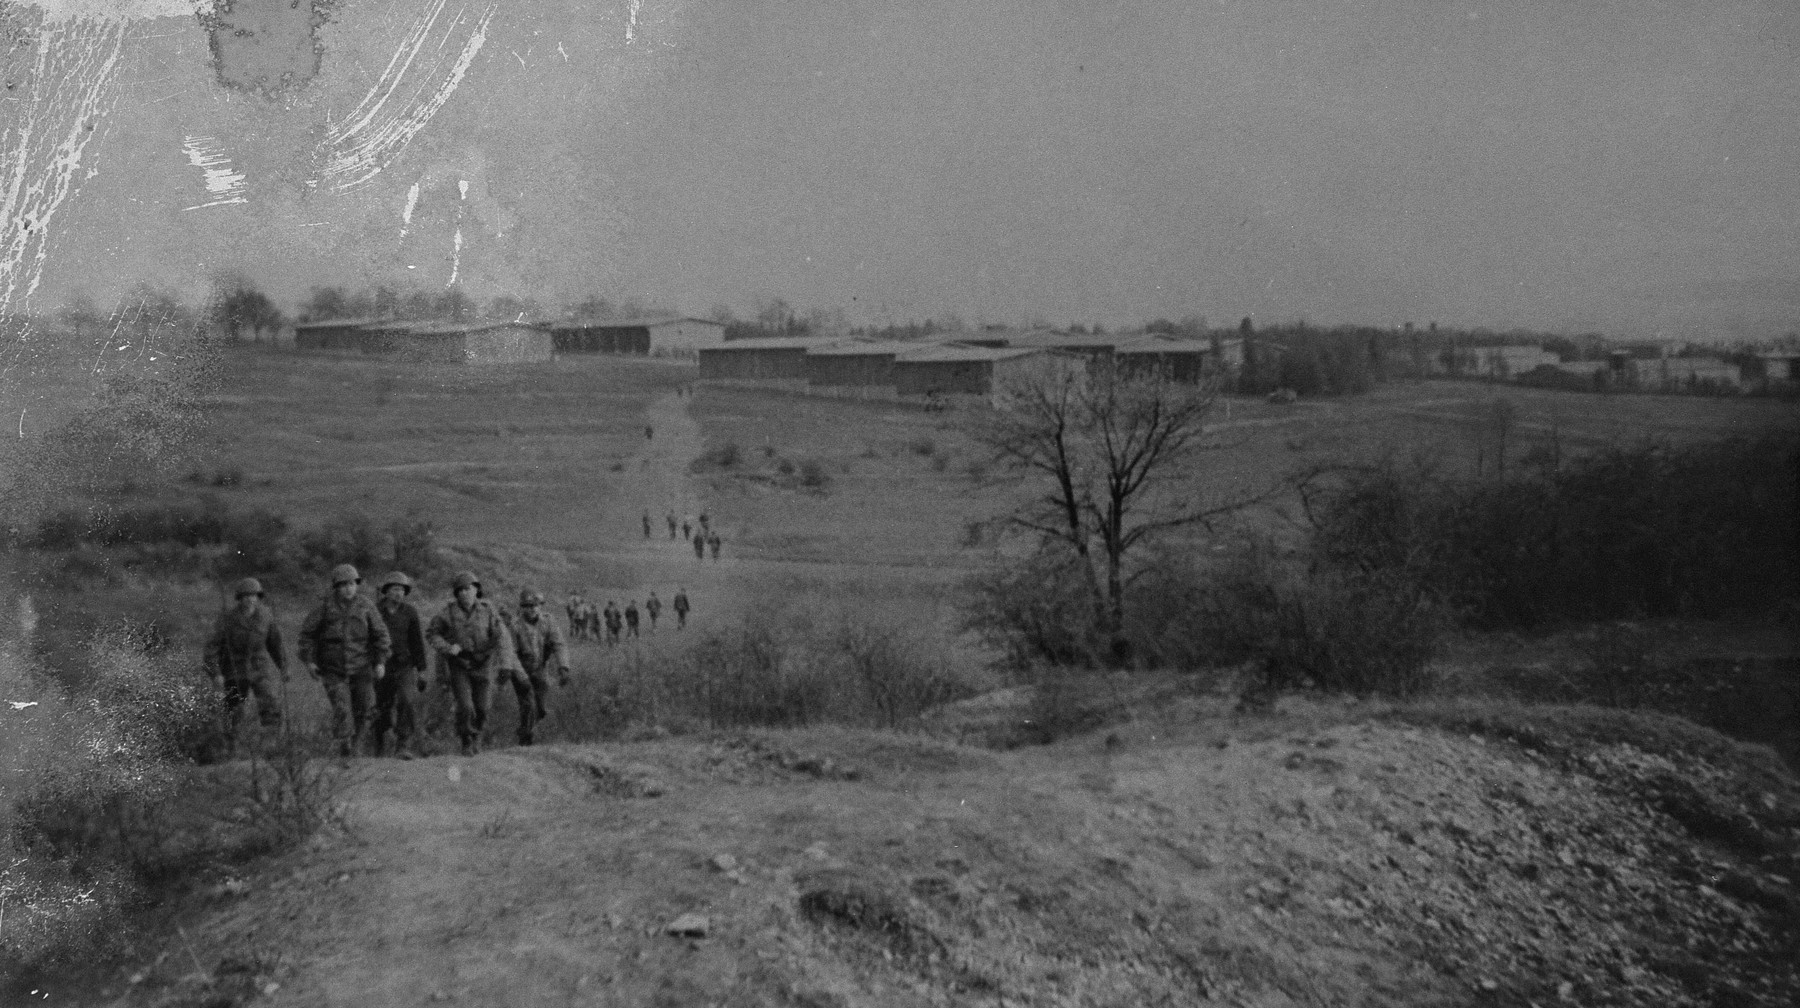 American troops walk up to the site where the dead from Ohrdruf were to be buried by German civilians.  The camp is visible in the background.